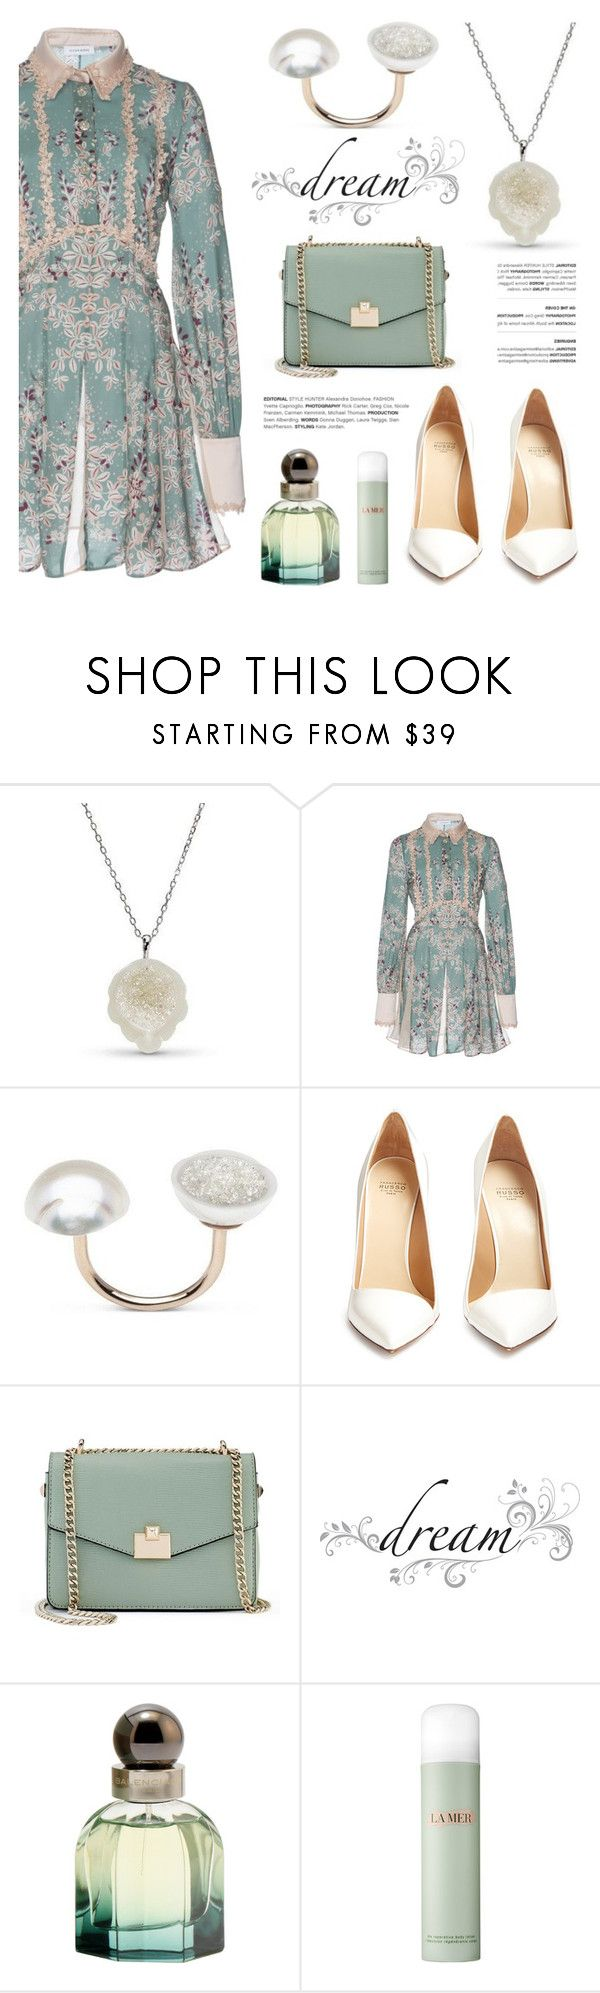 """Dreaming by Little h Jewelry"" by littlehjewelry ❤ liked on Polyvore featuring Stella Jean, Francesco Russo, Jennifer Lopez, jcp and Balenciaga"